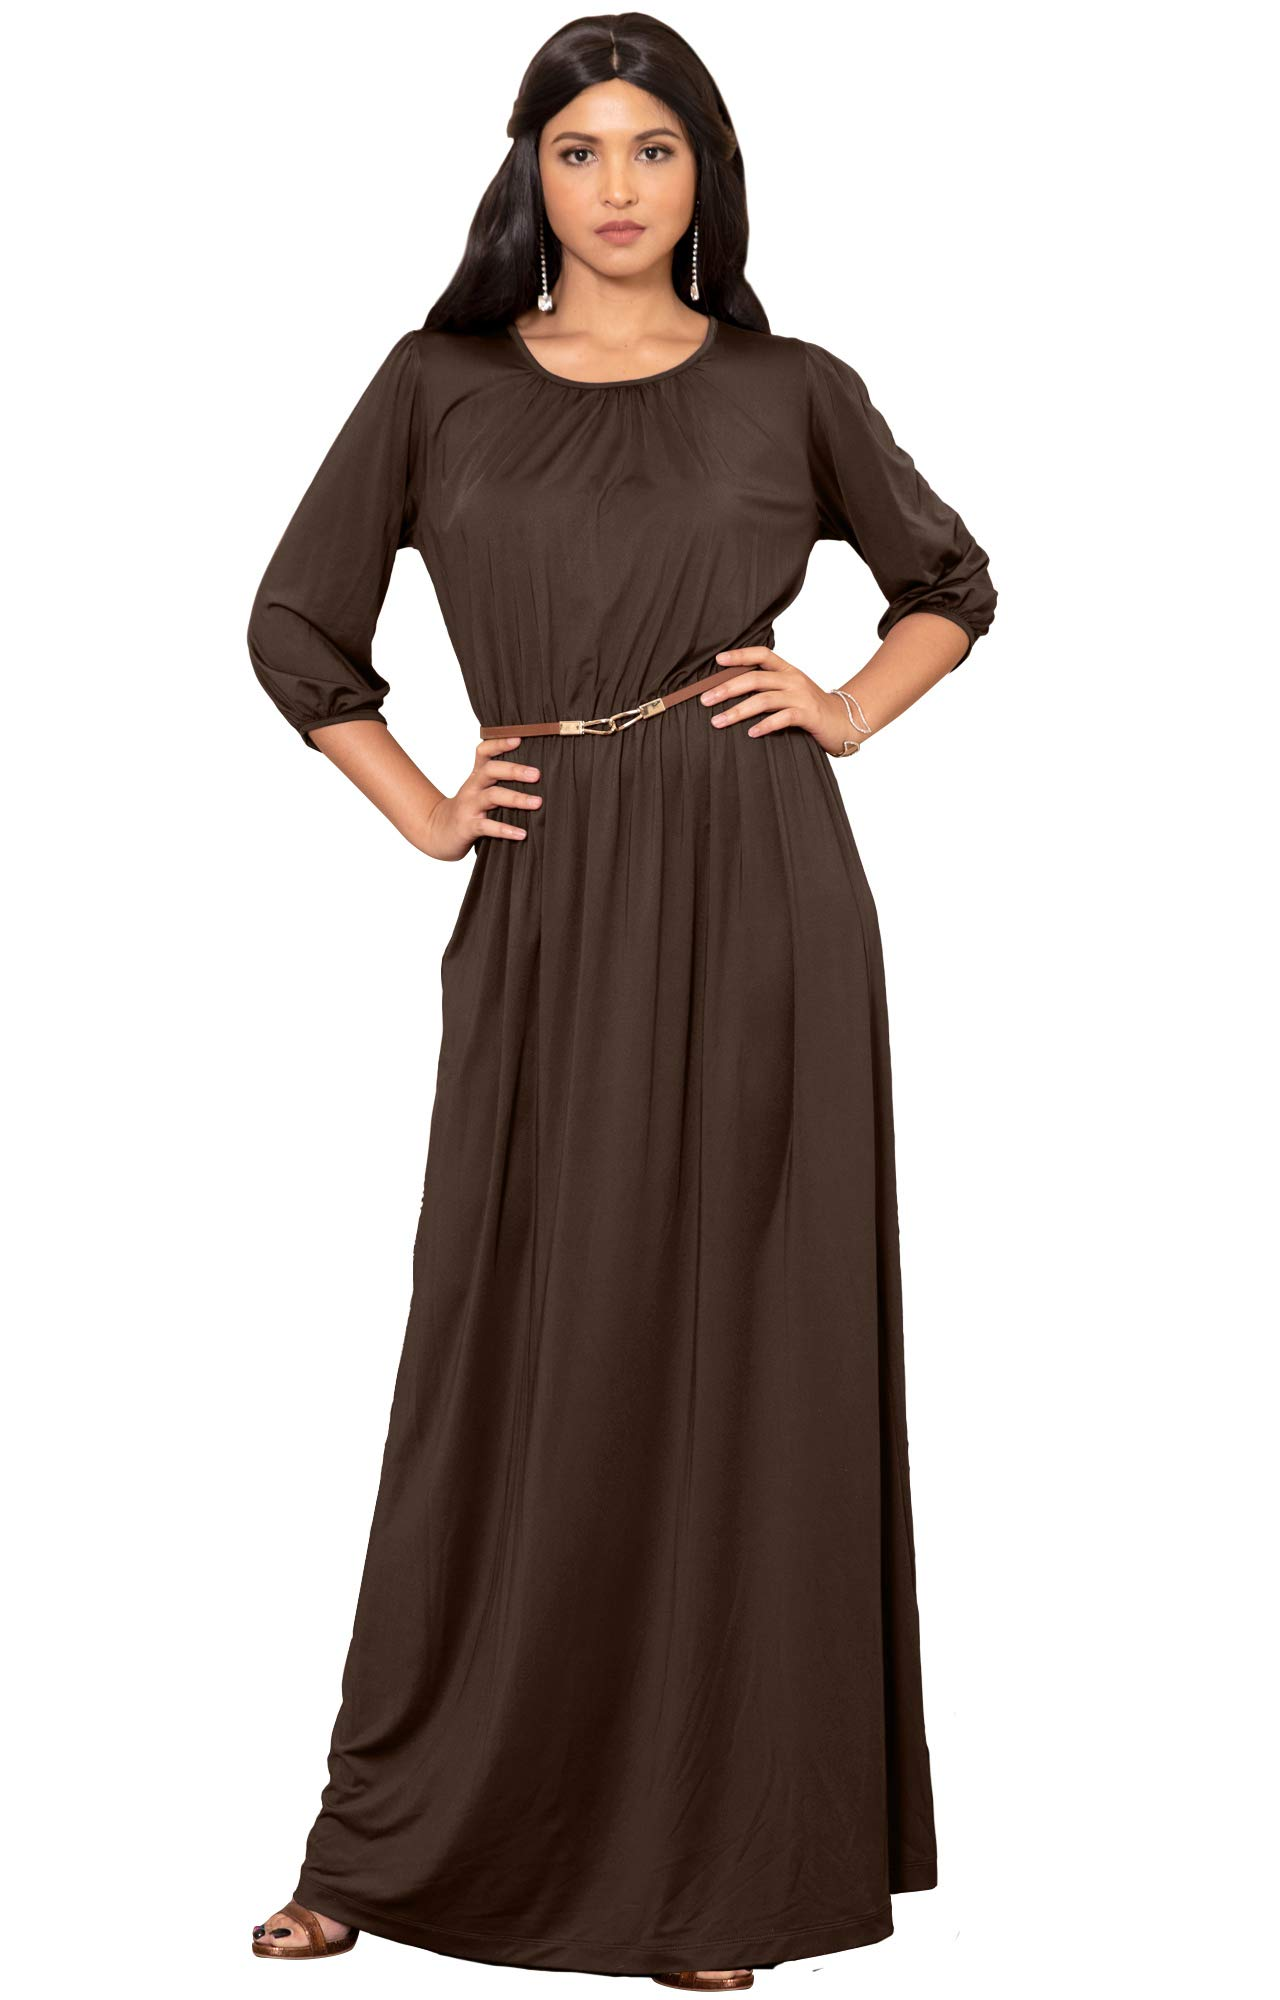 KOH KOH Petite Women Long 3/4 Sleeve Sleeves Vintage Autumn Fall Winter Flowy Formal Evening Work Office Modest Peasant Cute Abaya Gown Gowns Maxi Dress Dresses, Dark Brown S 4-6 (1)